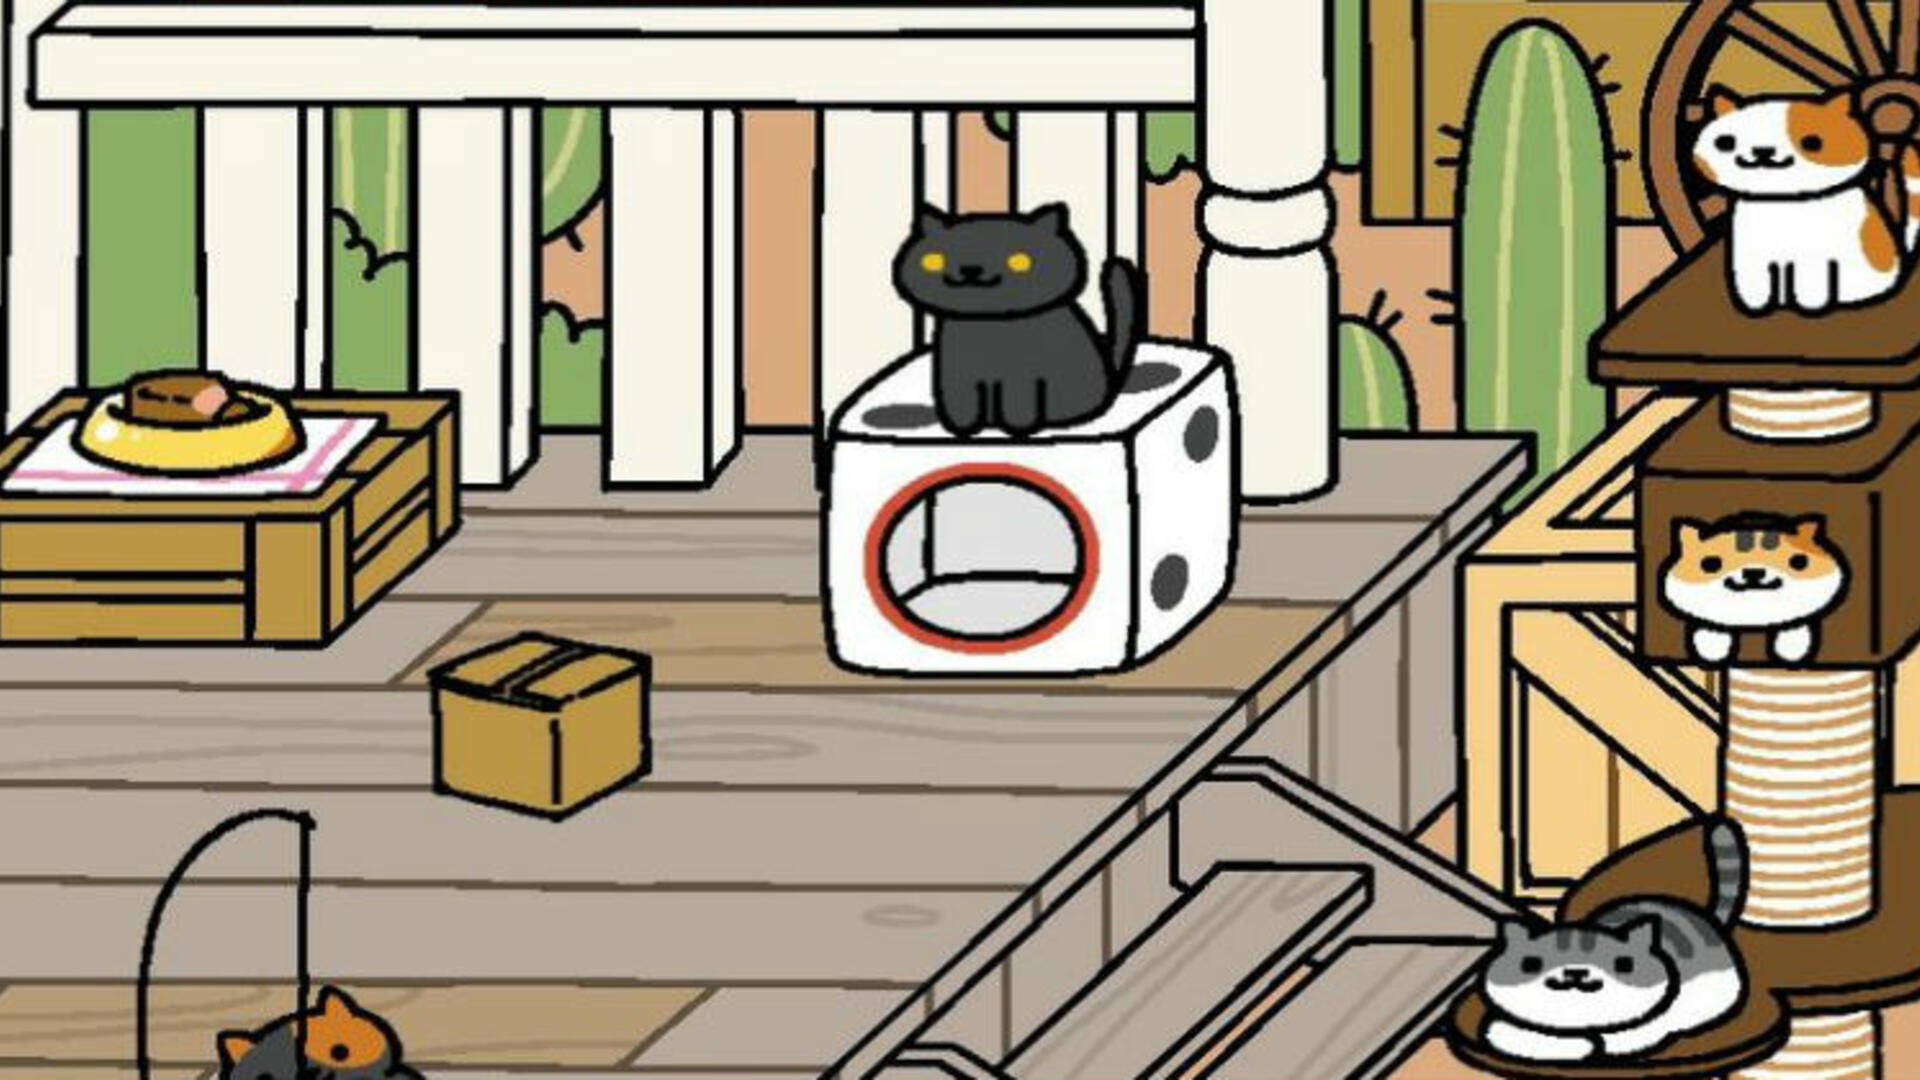 Neko Atsume Is Coming to PlayStation VR, and I Hope It's a Survival Horror Game